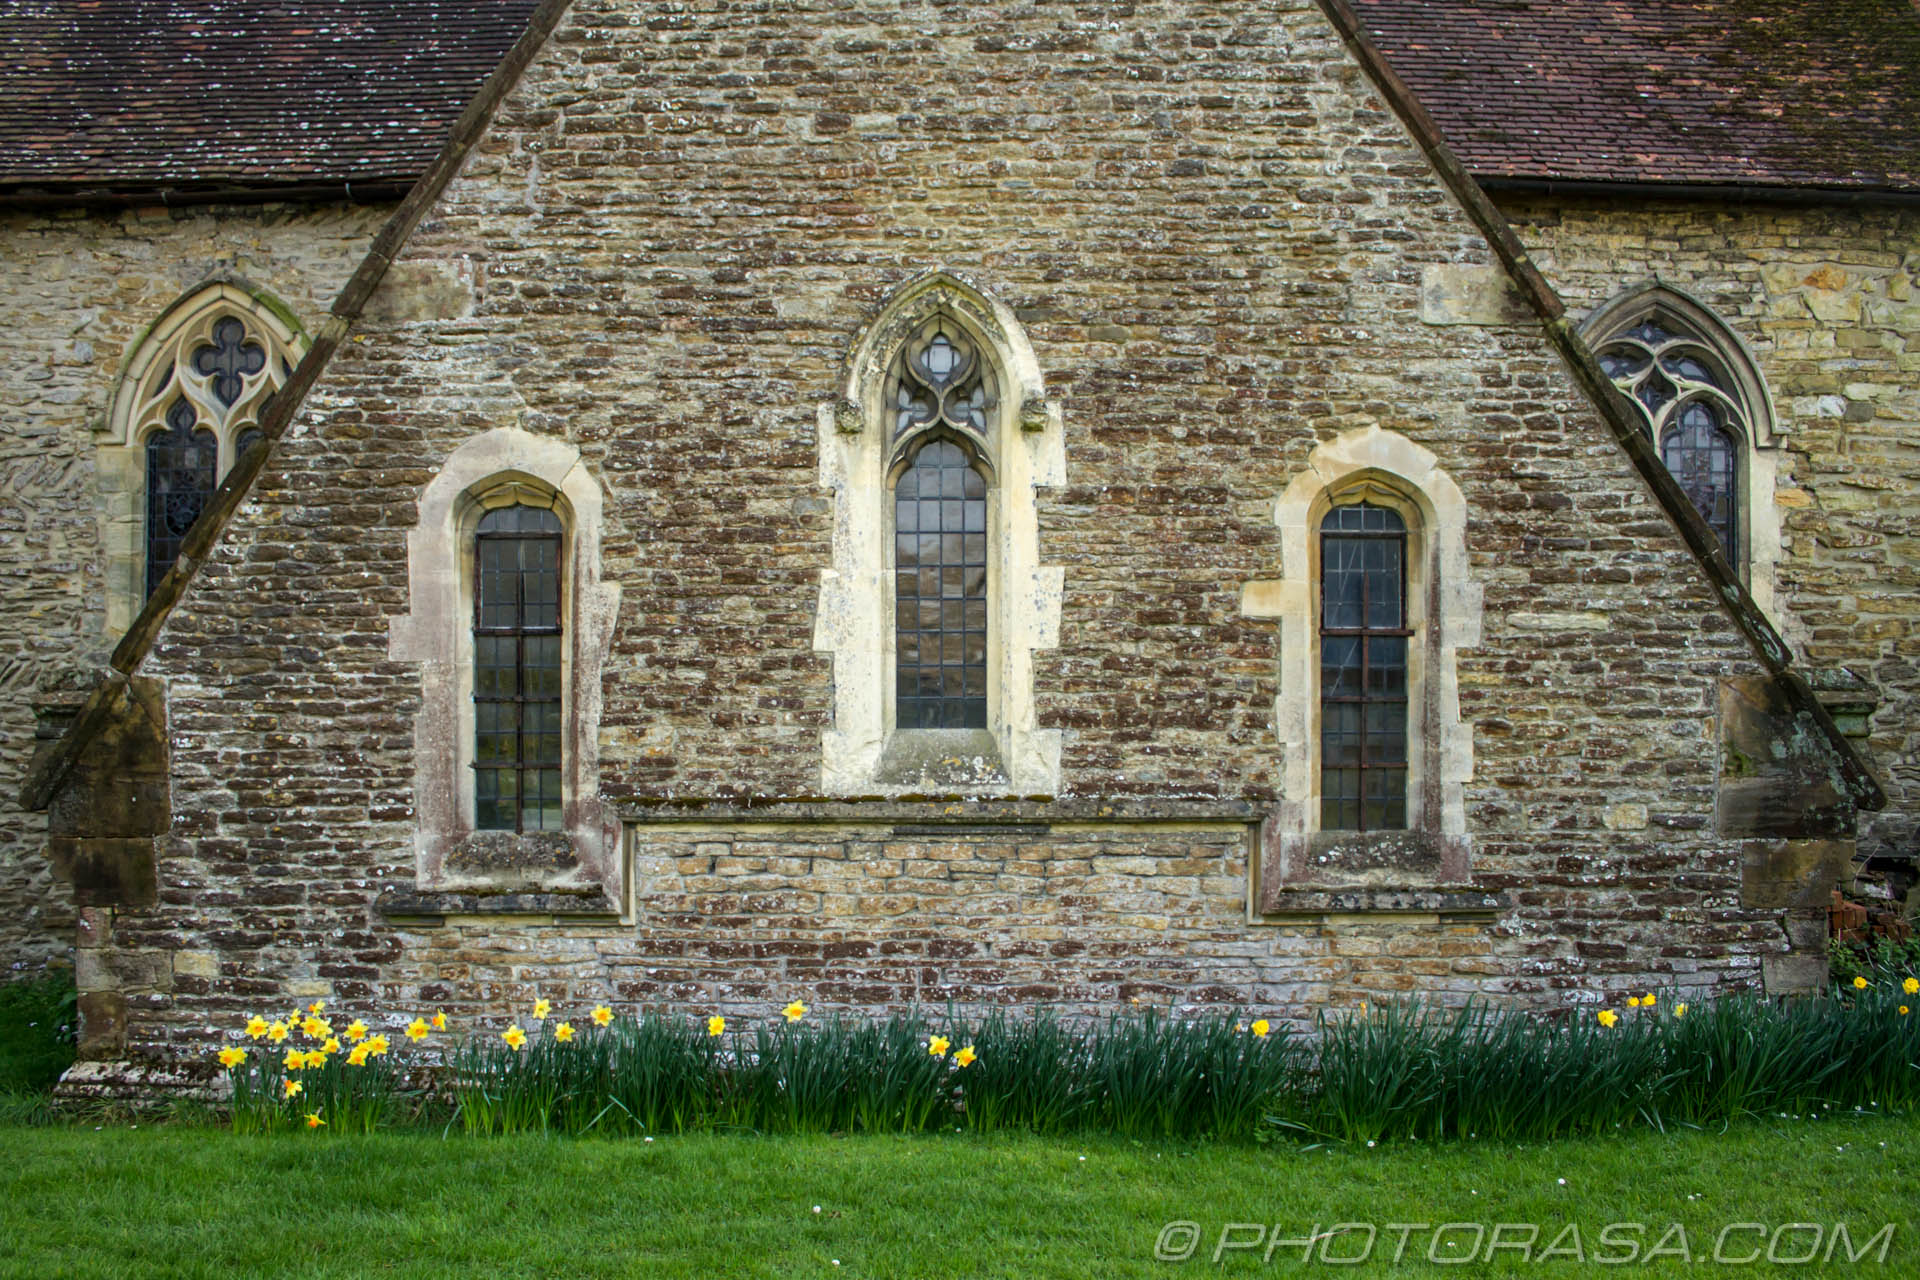 http://photorasa.com/saints-church-staplehurst-kent/three-windows/